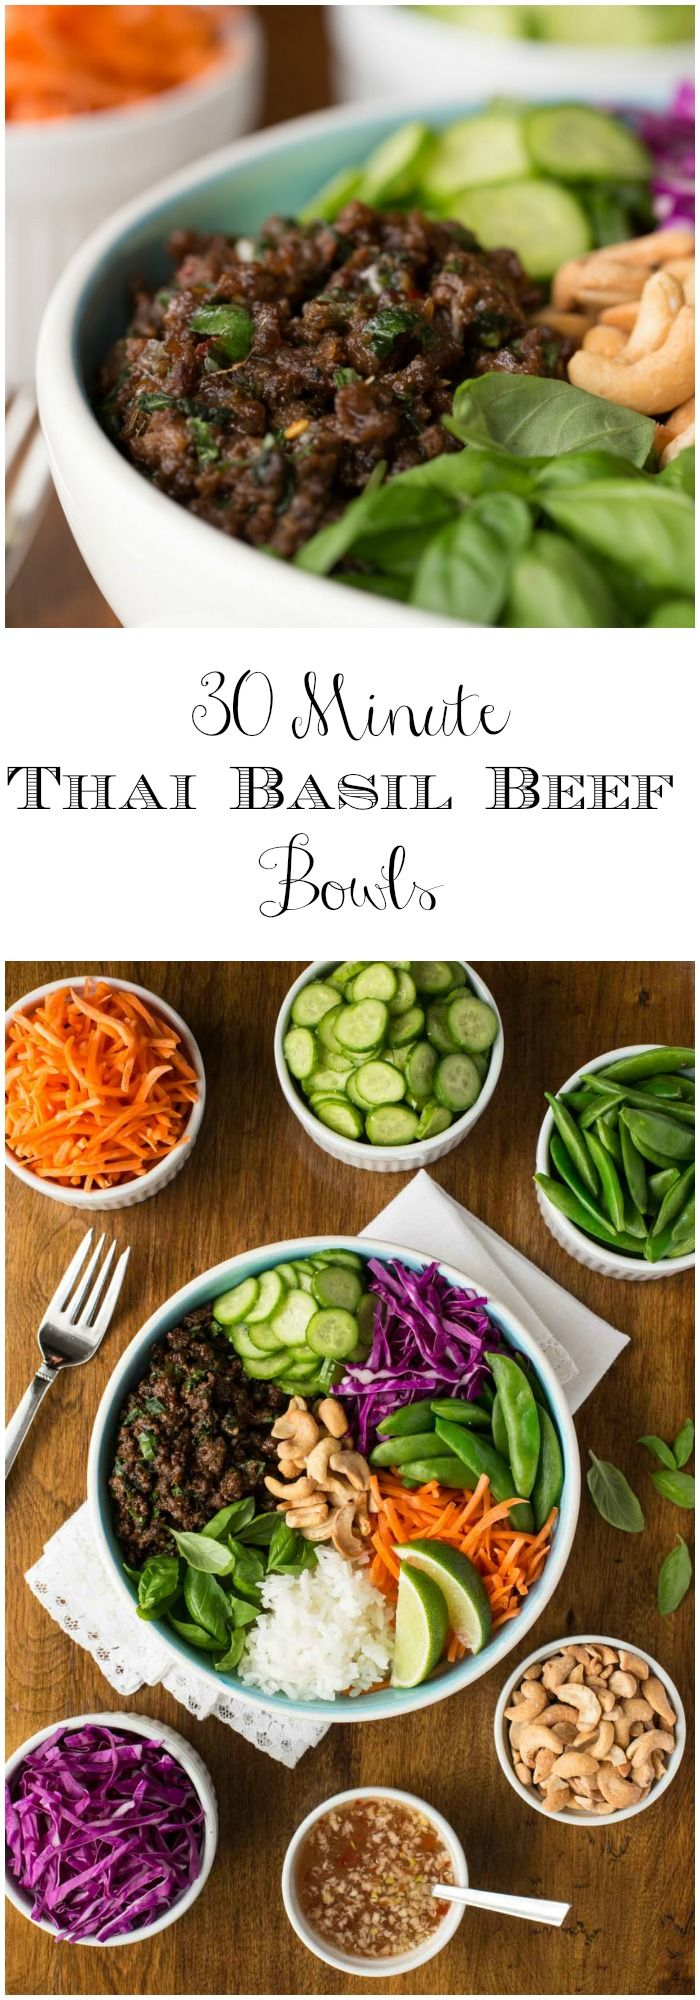 Basil Beef Rice Bowls - an easy, Thai-inspired meal in a bowl that's fresh, vibrant, healthy and super delicious!